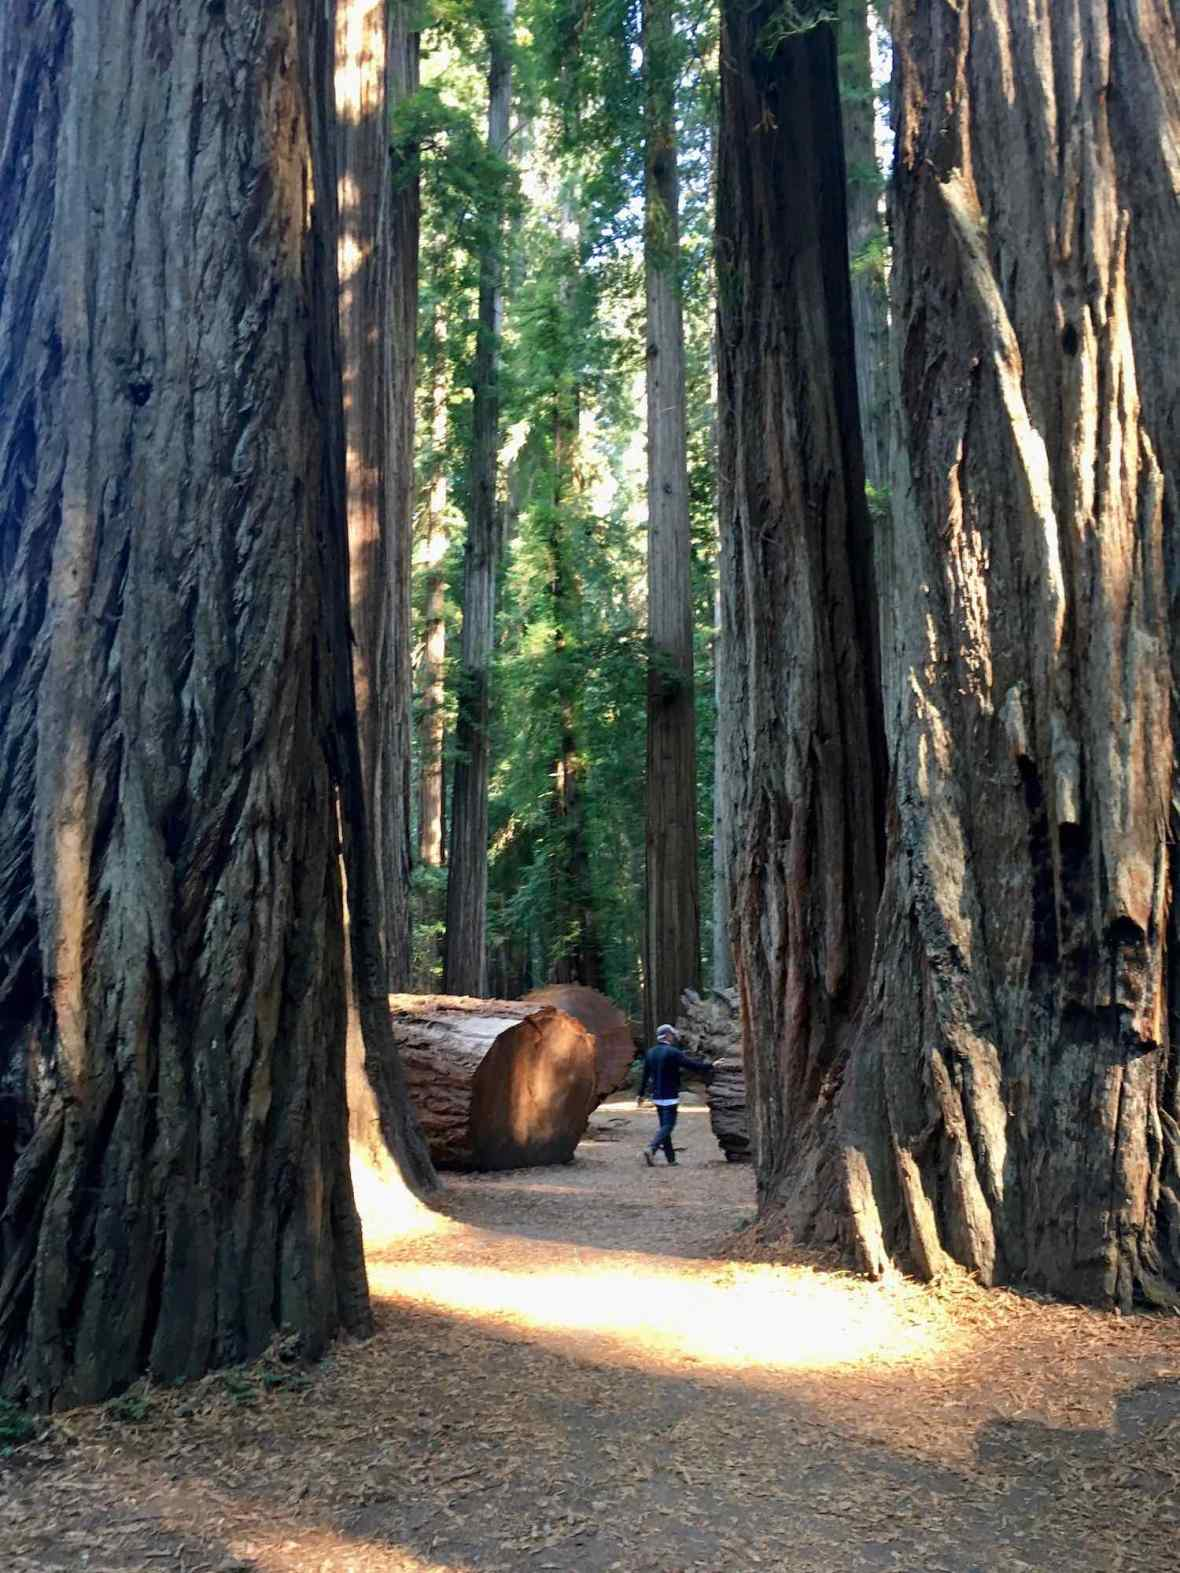 The Stout Memorial Redwood Grove at Jedediah Smith Redwoods State Park